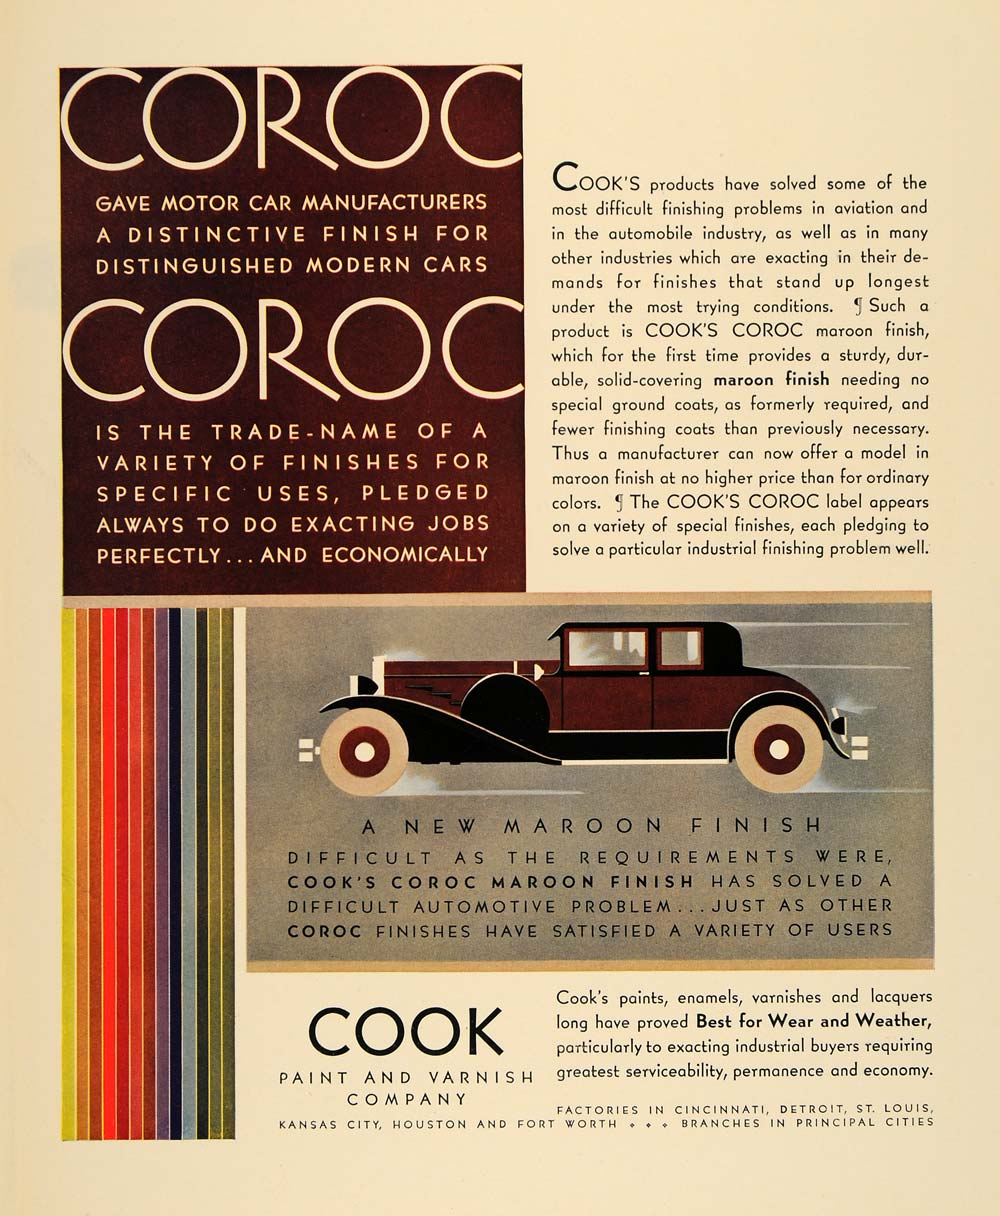 1930 Ad Cook Paint Varnish Coroc Motor Cars Lacquers - ORIGINAL ADVERTISING  F3A